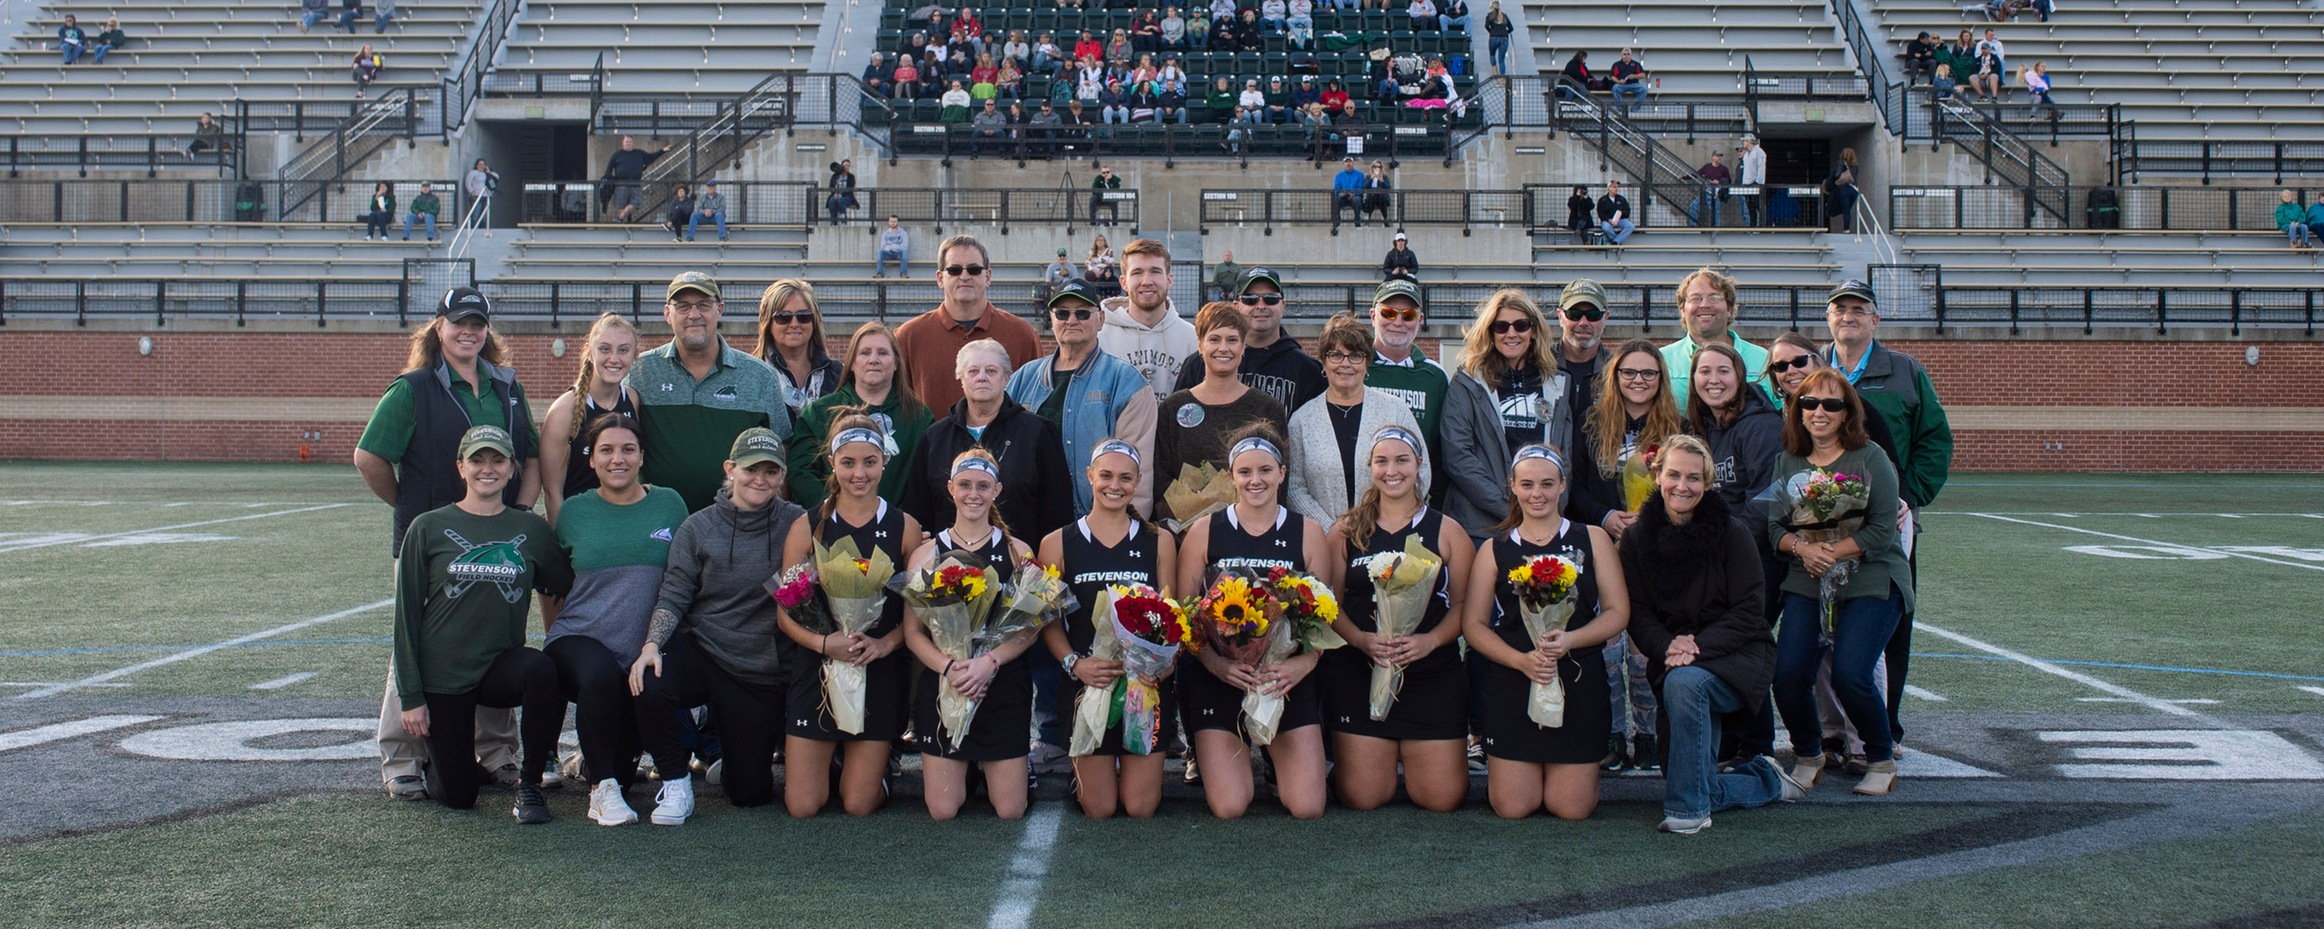 Mustangs Fall to Albright in Overtime on Senior Day